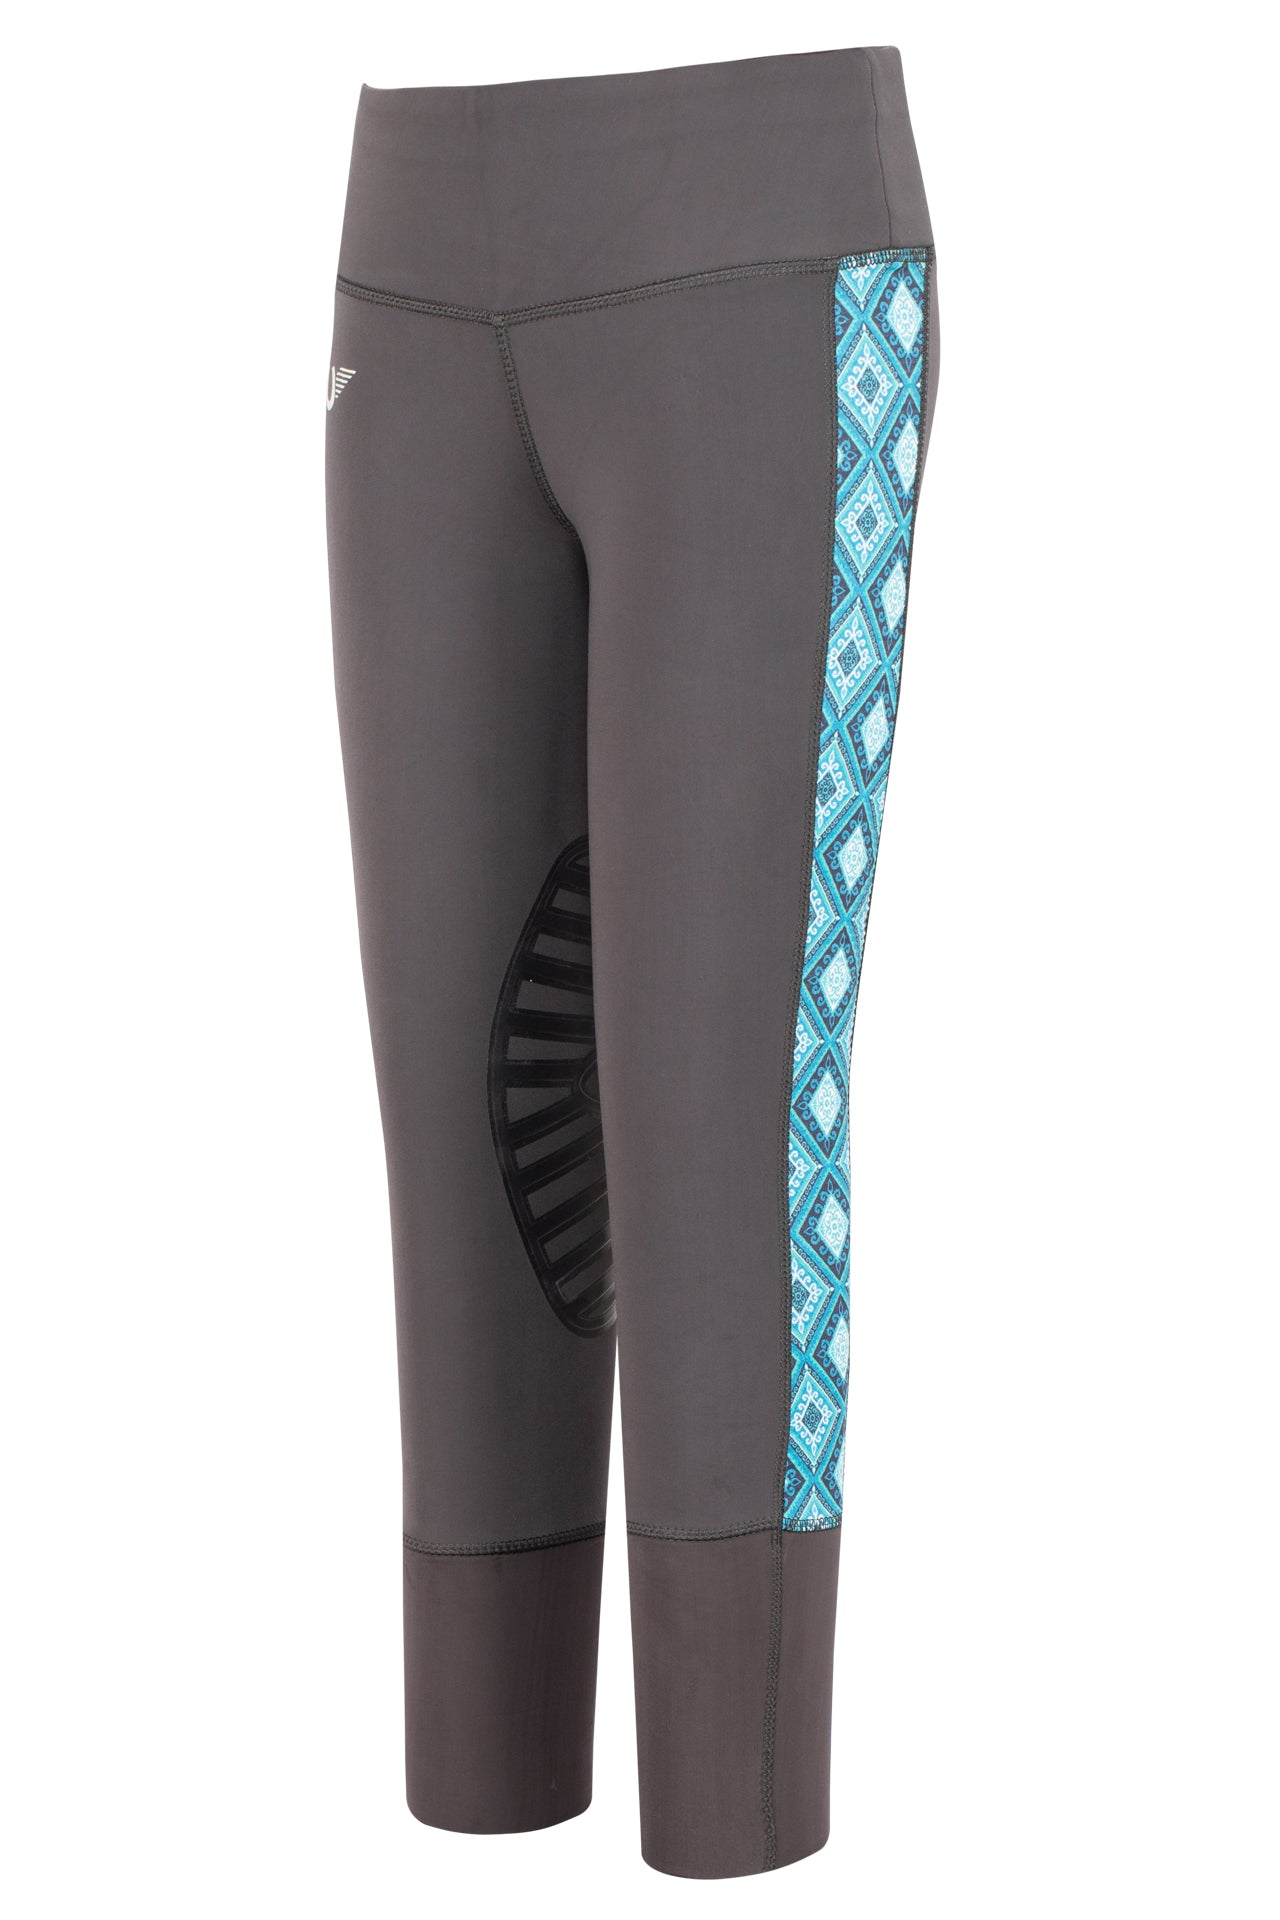 TuffRider Children's Artemis EquiCool Riding Tights_873